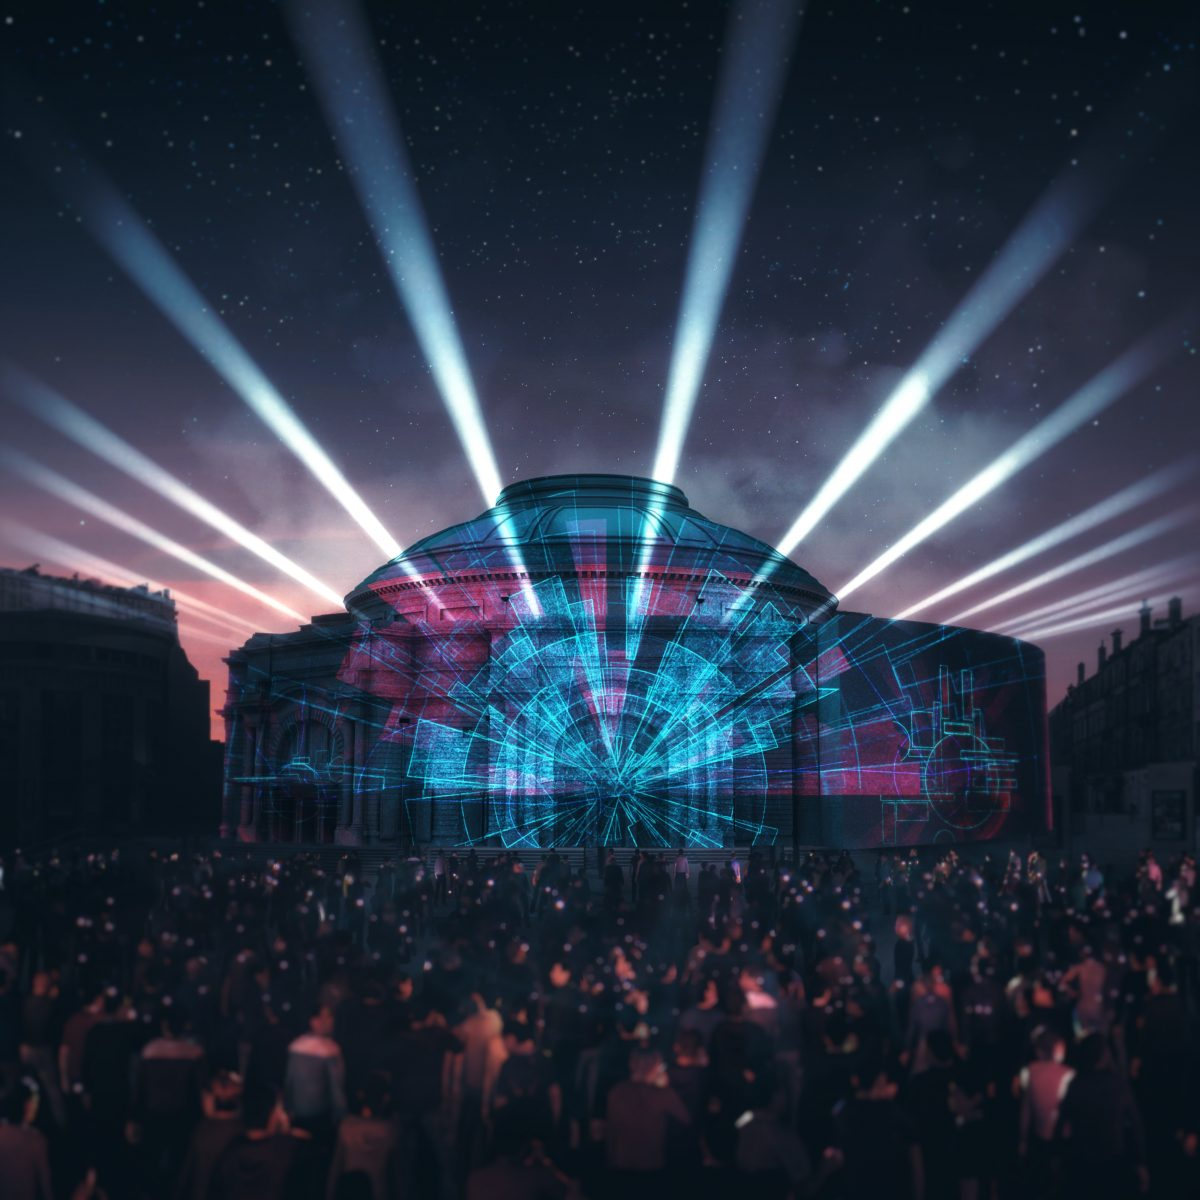 15,000 free tickets released for International Festival opening event